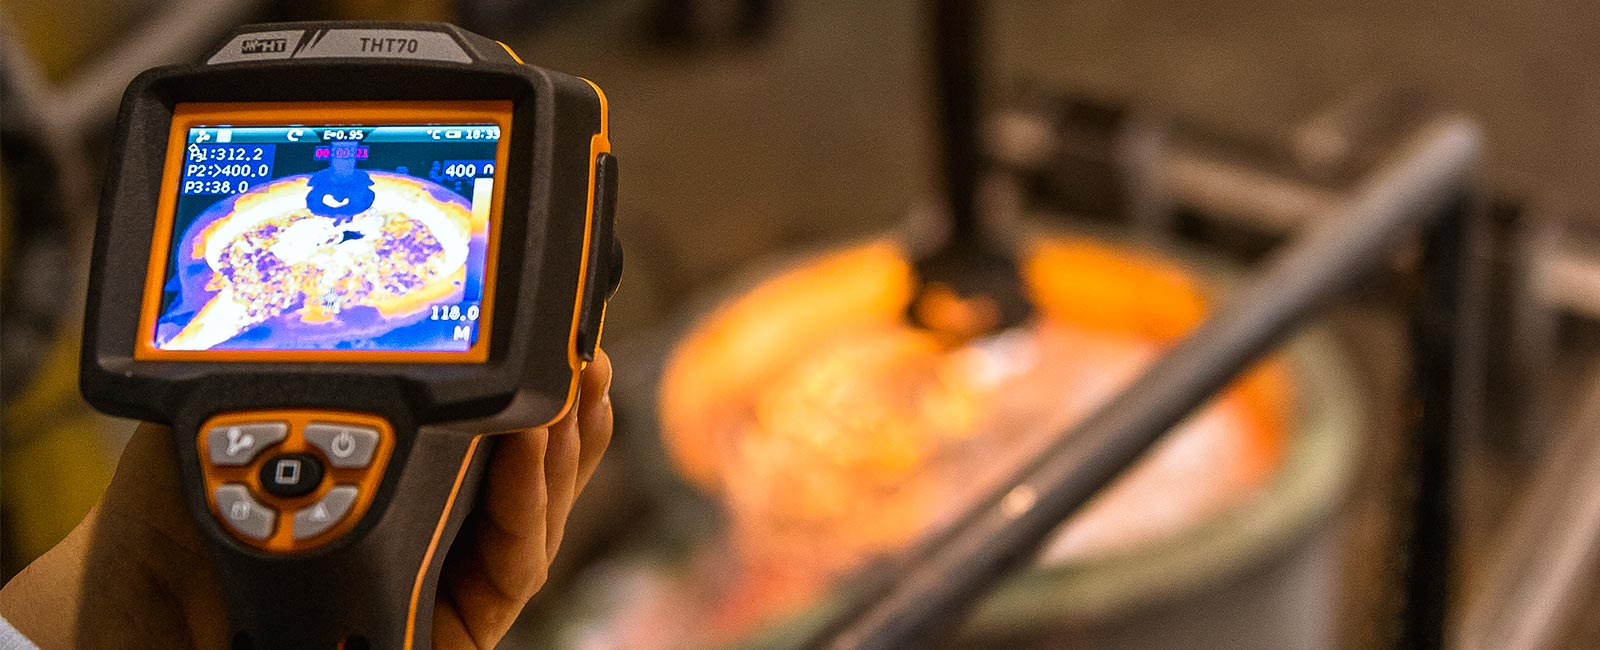 Advanced infrared thermal camera with touch-screen display, PiP function and resolution 384x288pxl